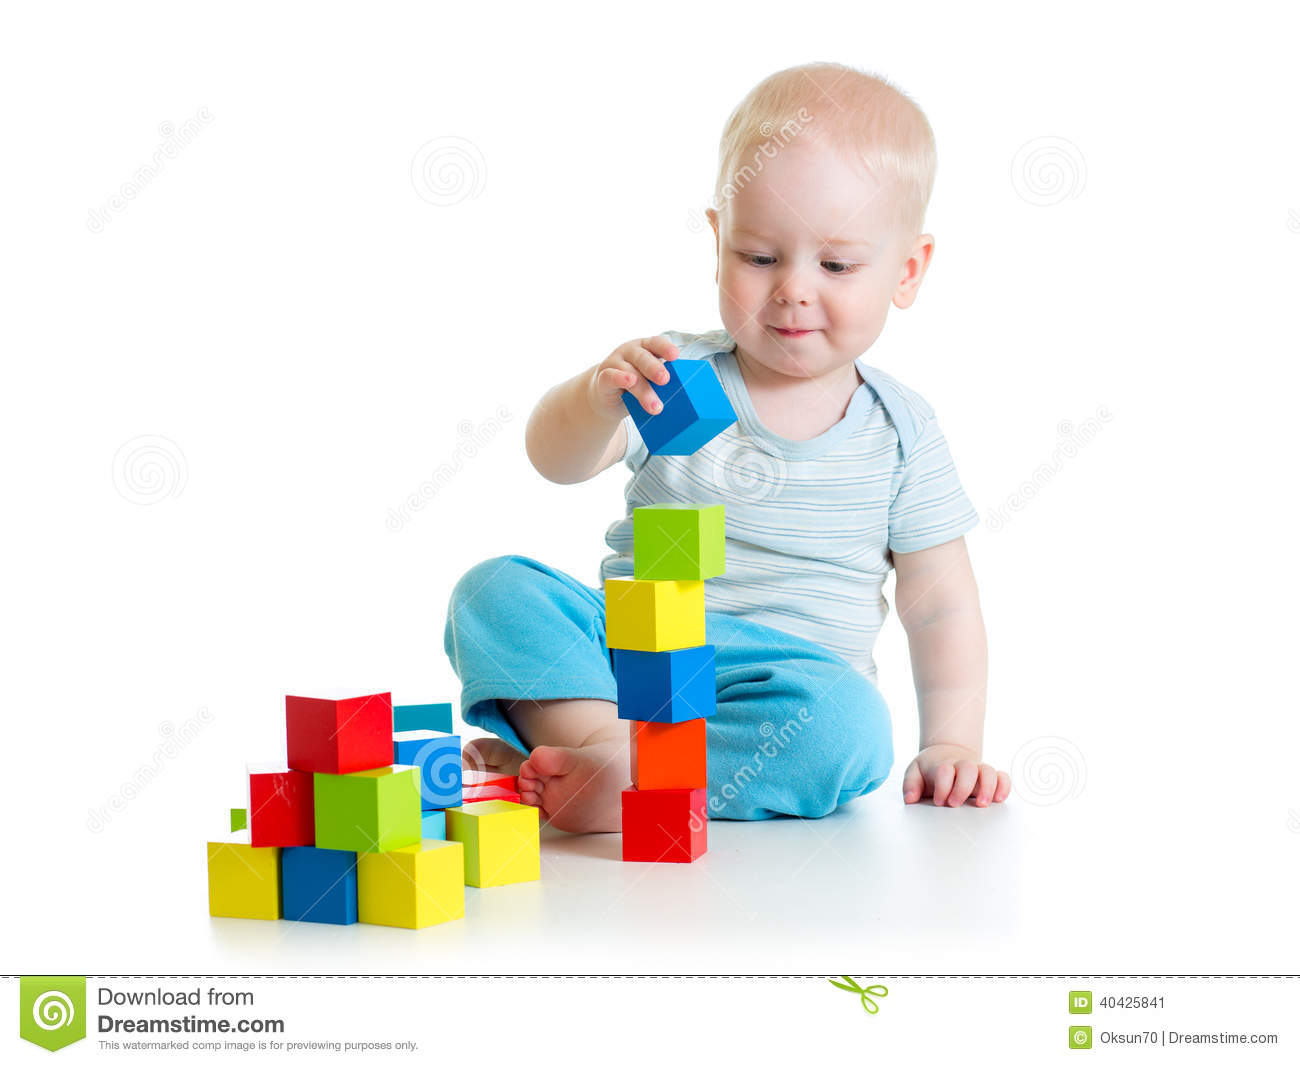 Building Toys For Babies : Kid toddler playing with building block toys stock image